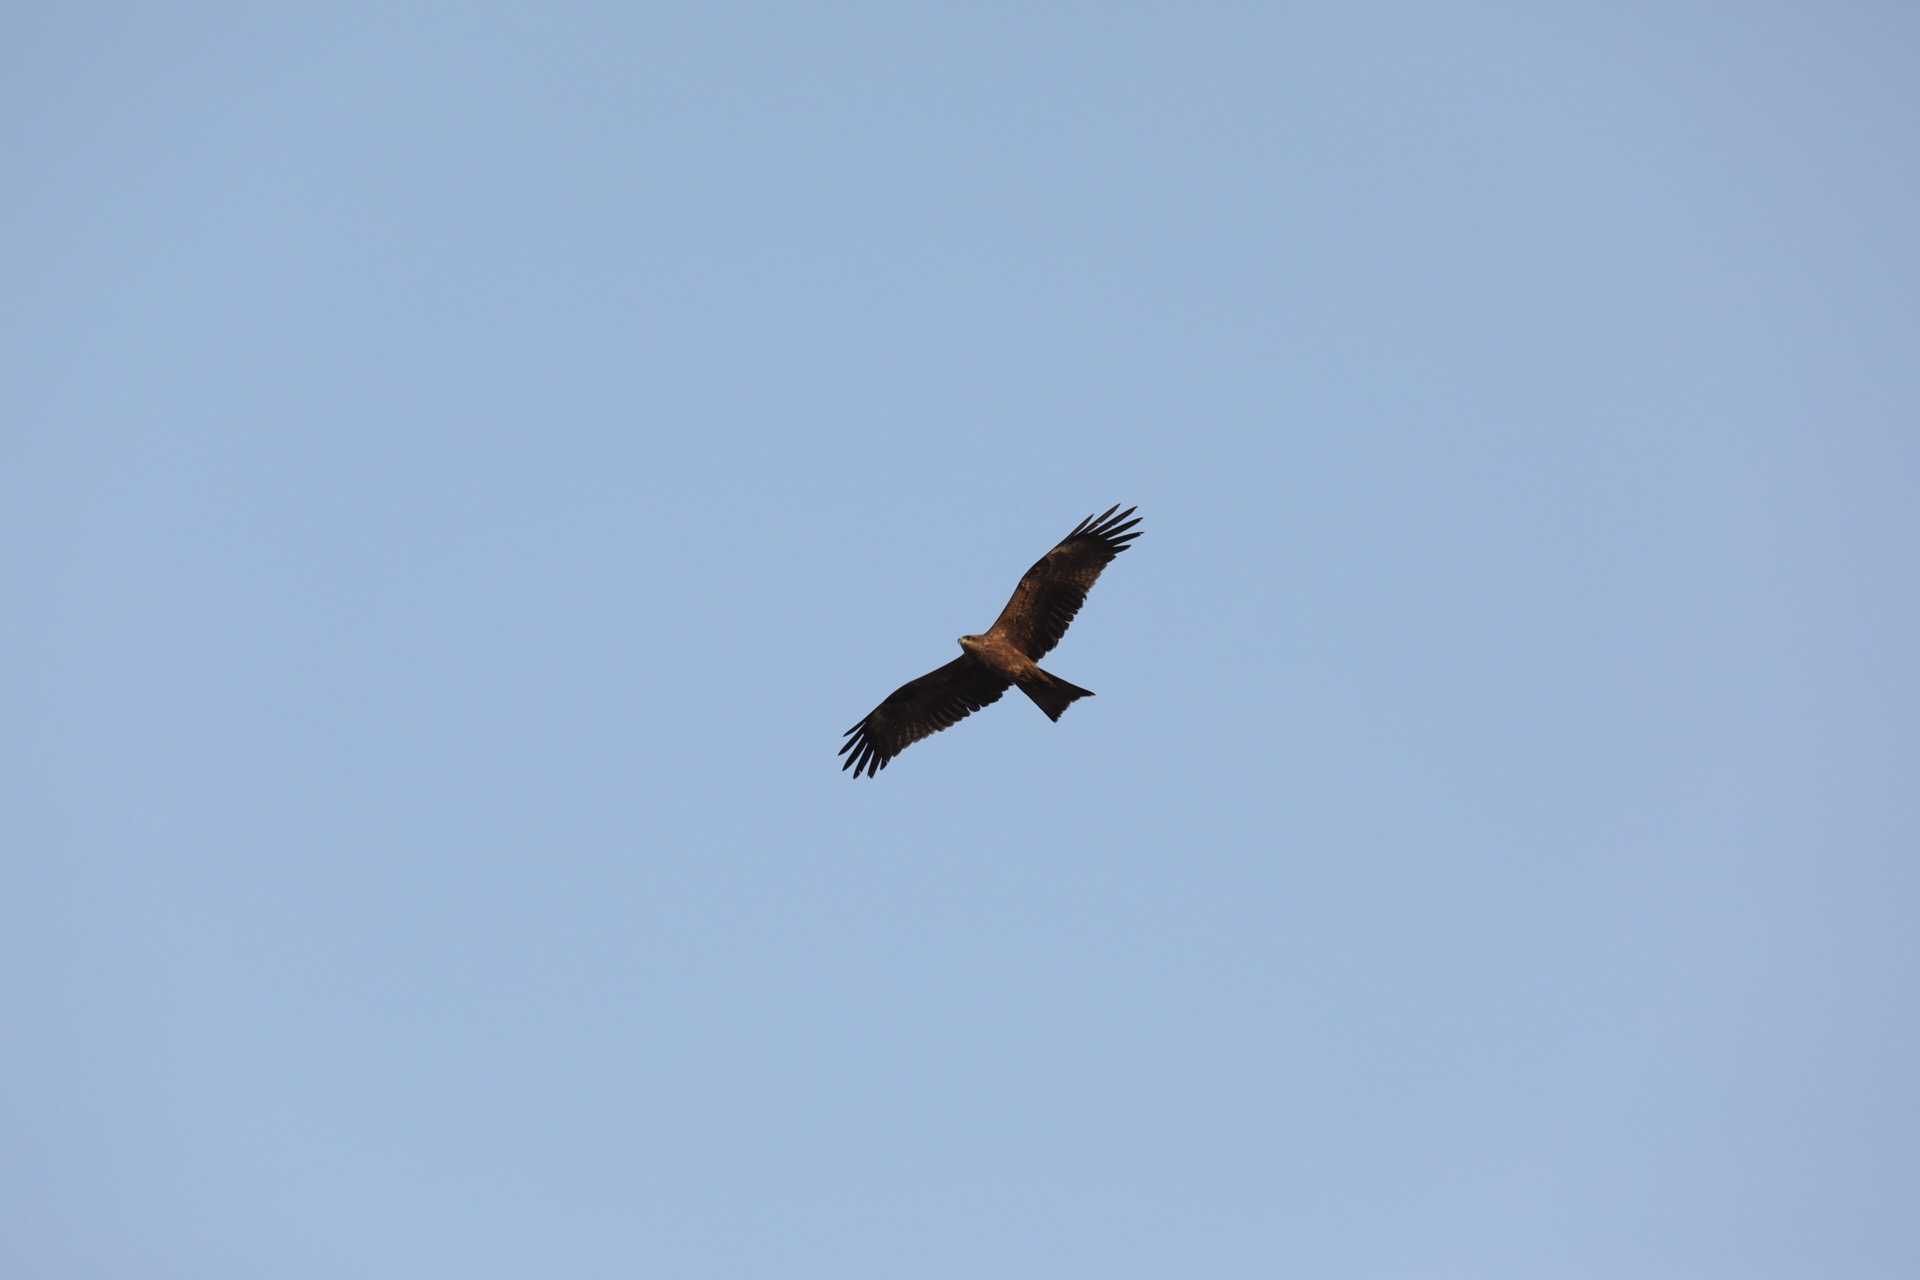 Not sure if it's an eagle or a kite but lovely anyway :)